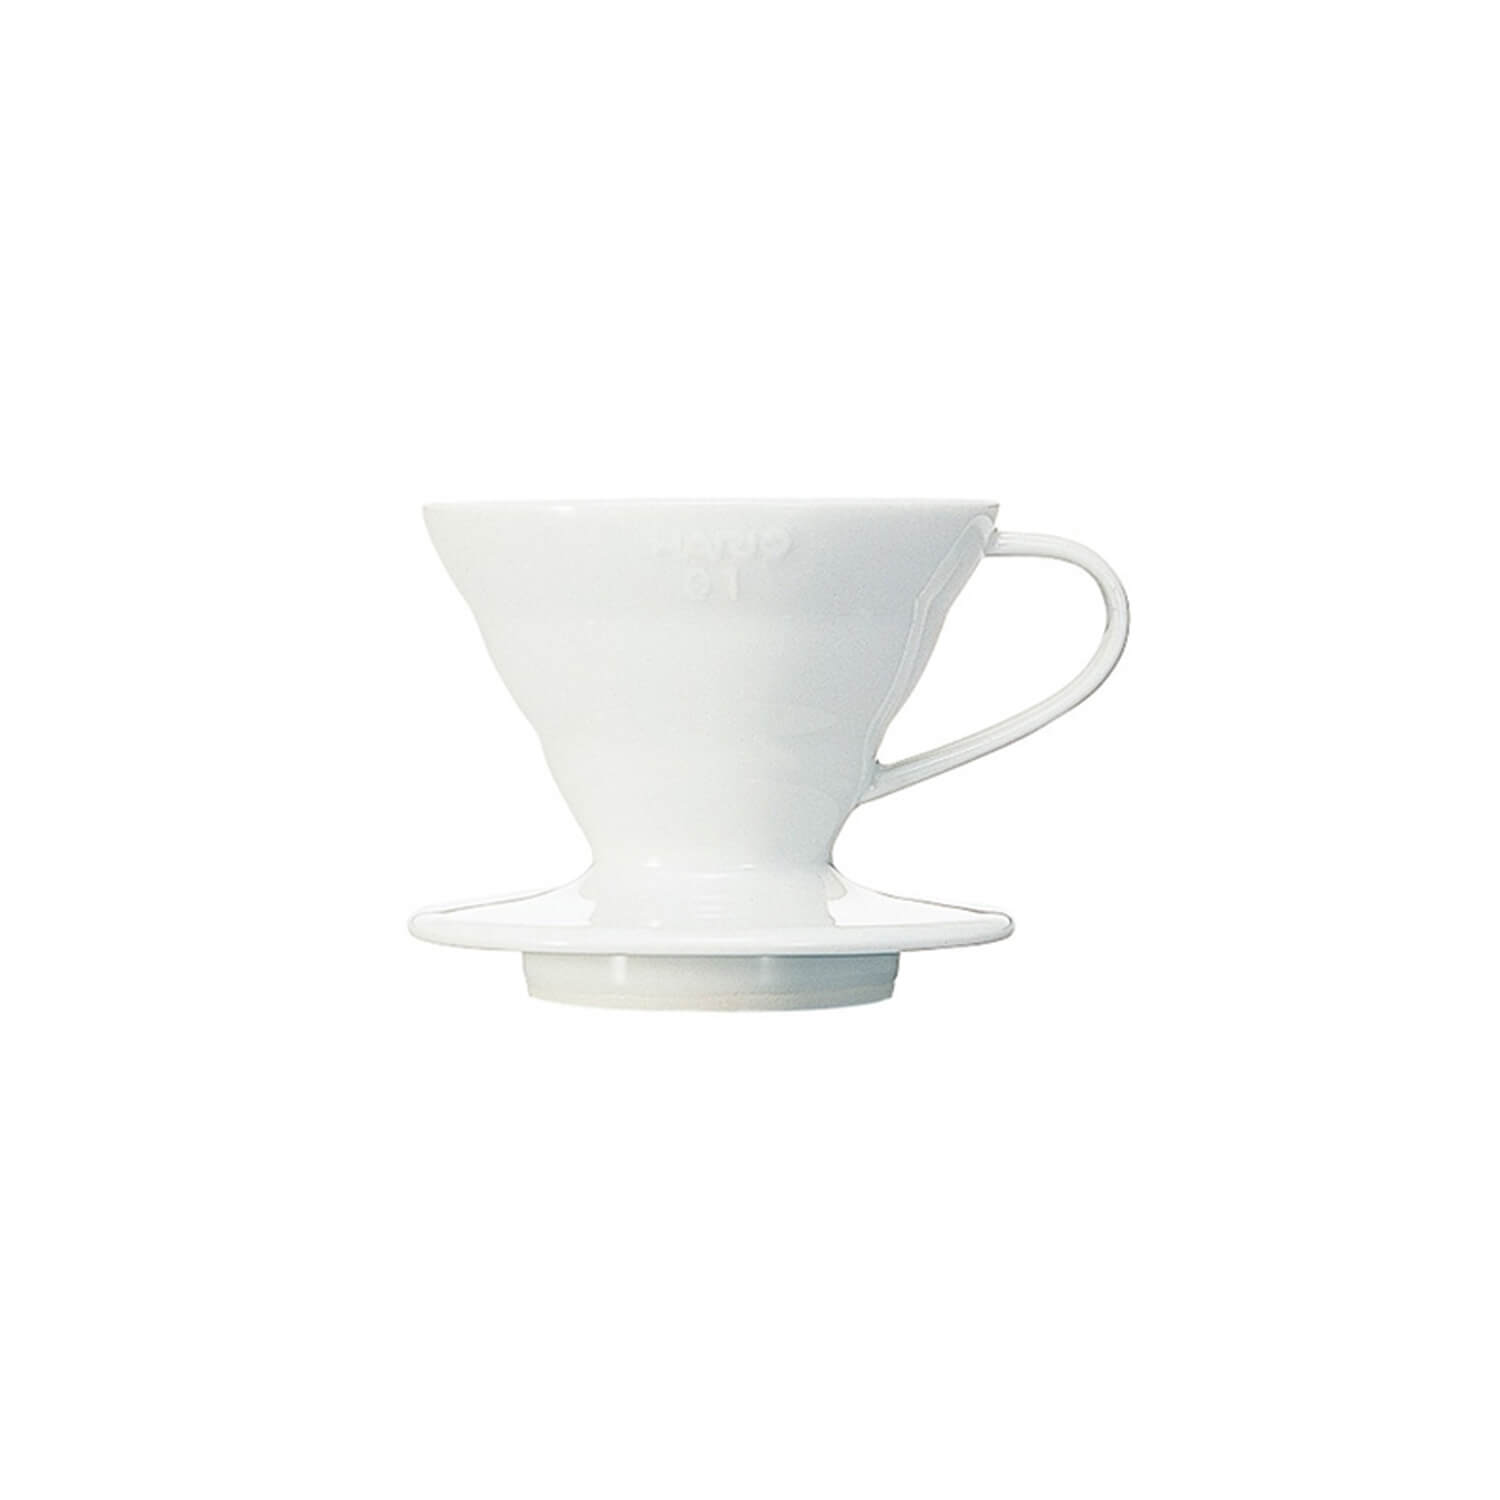 Hario - Dripper V60 - 01 - Ceramic white